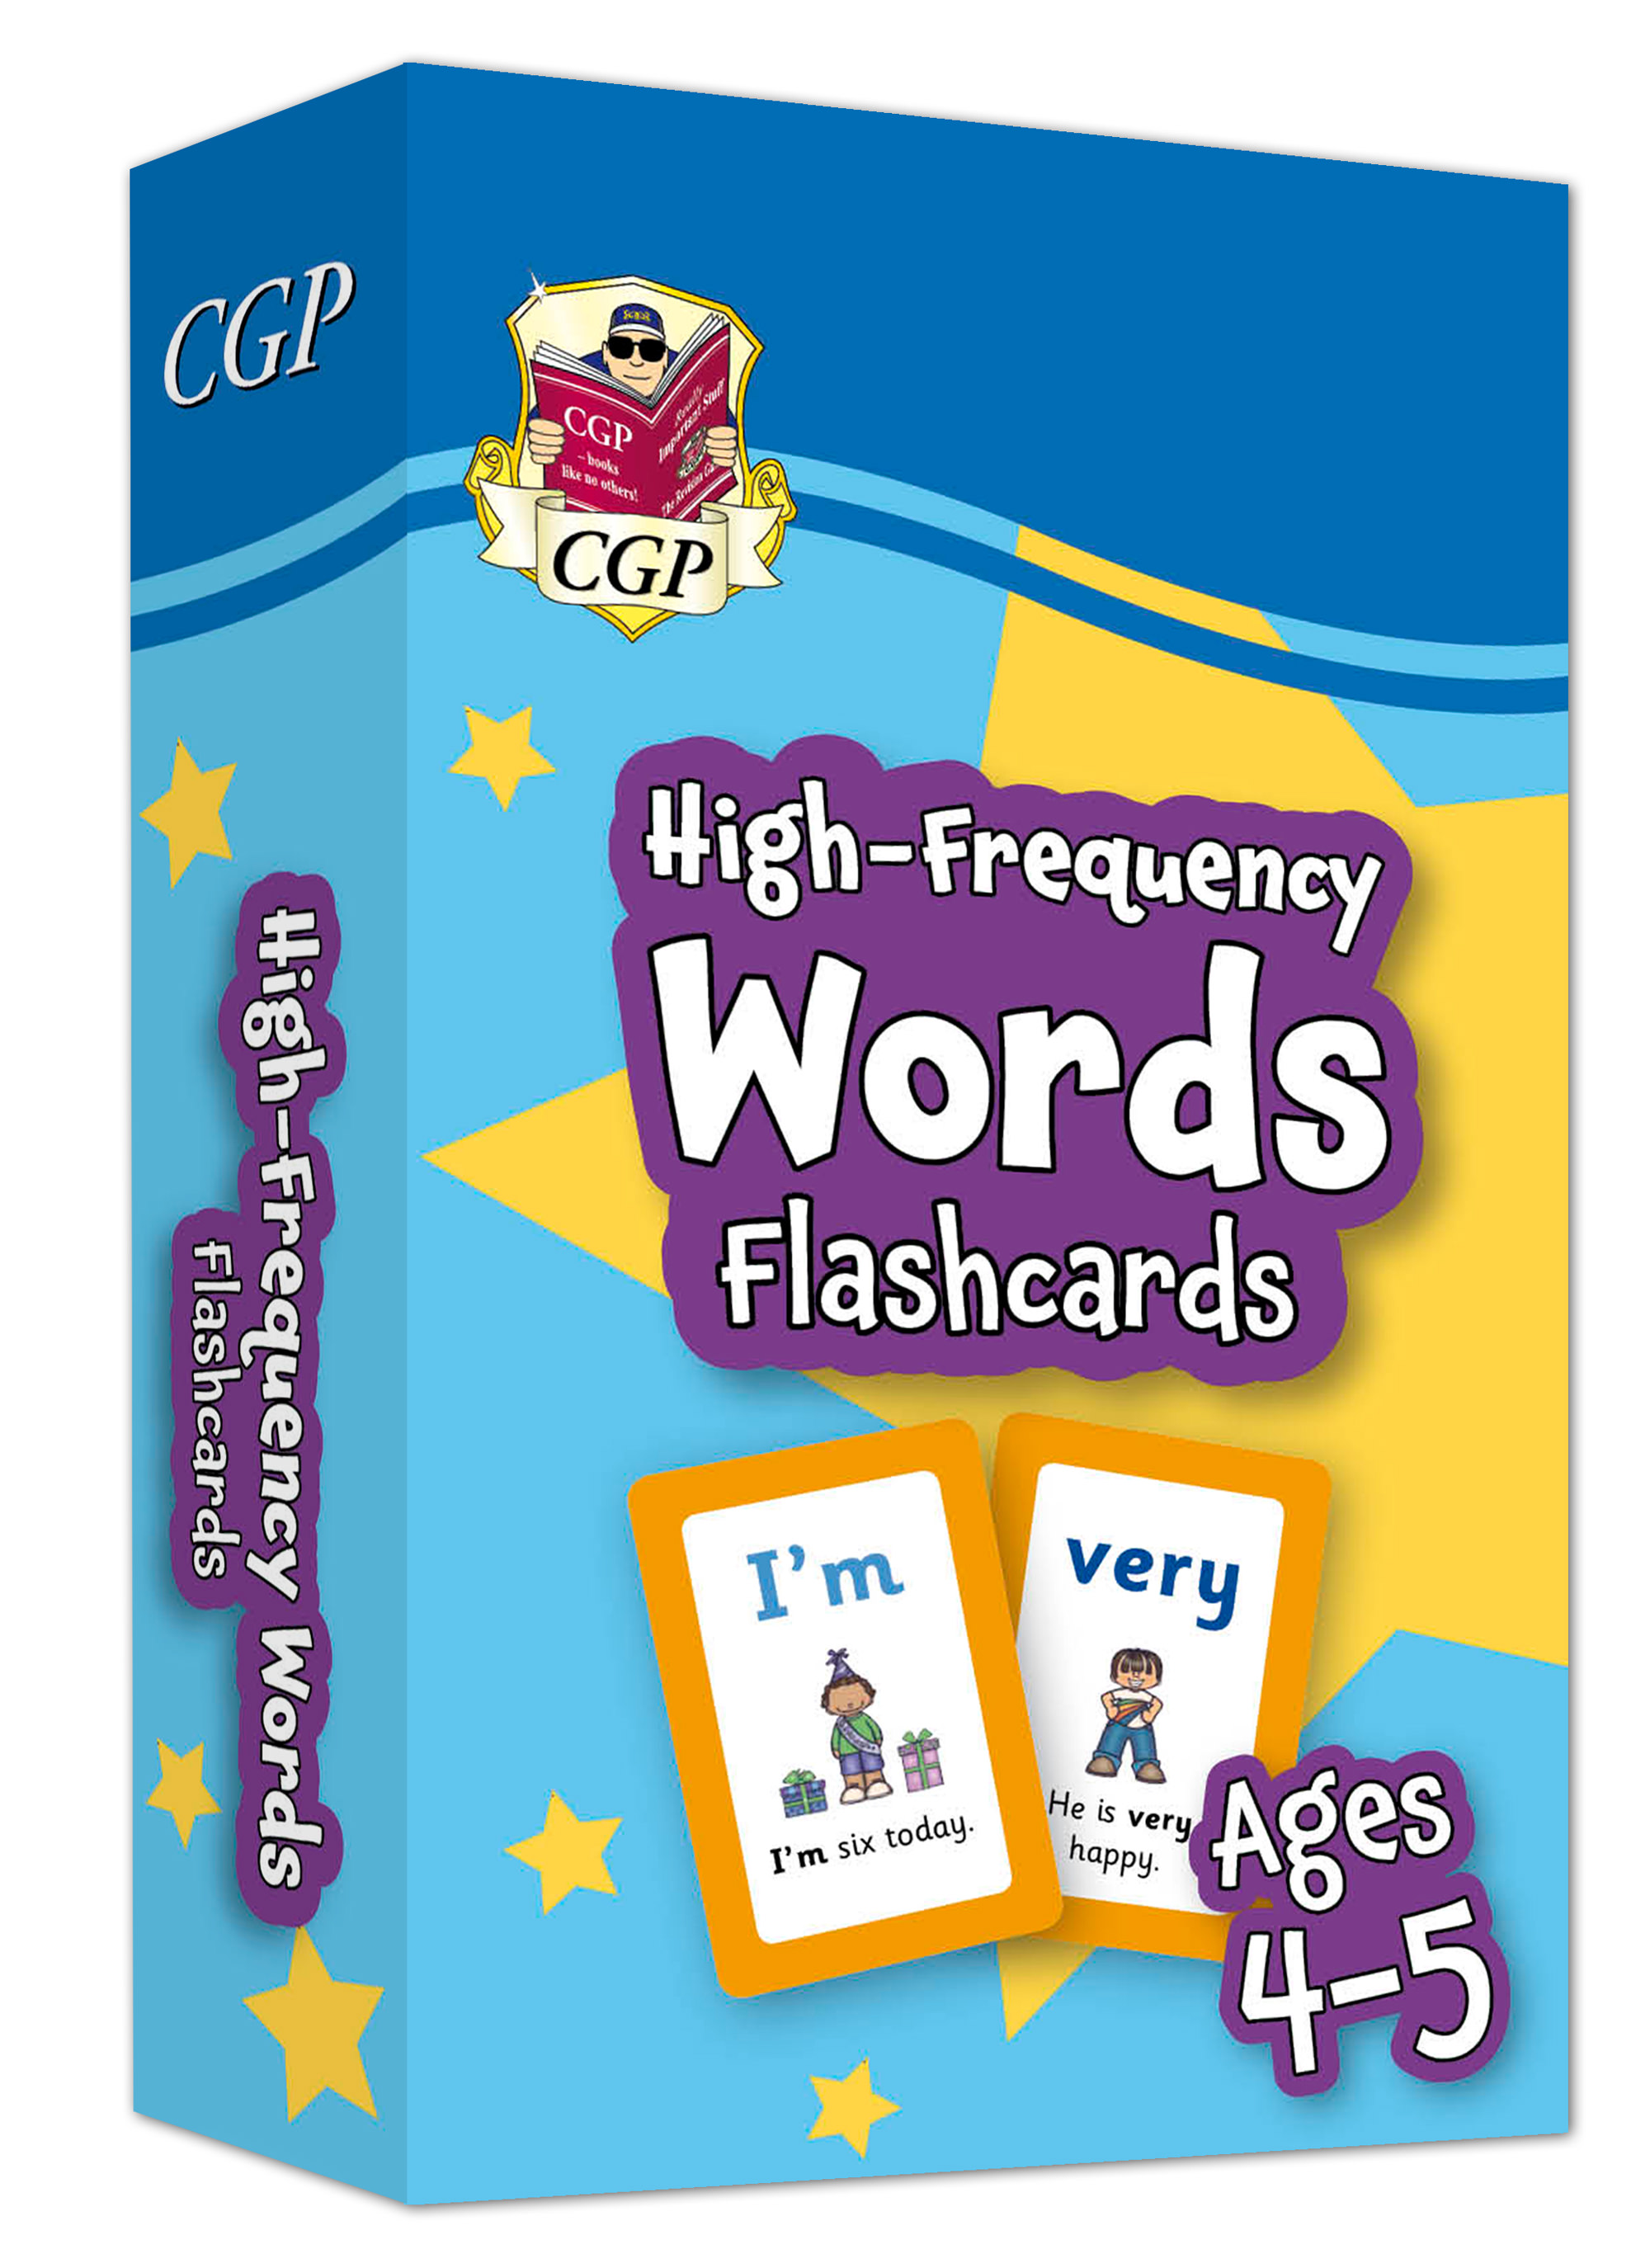 EPFWRF01DK - New High-Frequency Words Home Learning Flashcards for Ages 4-5